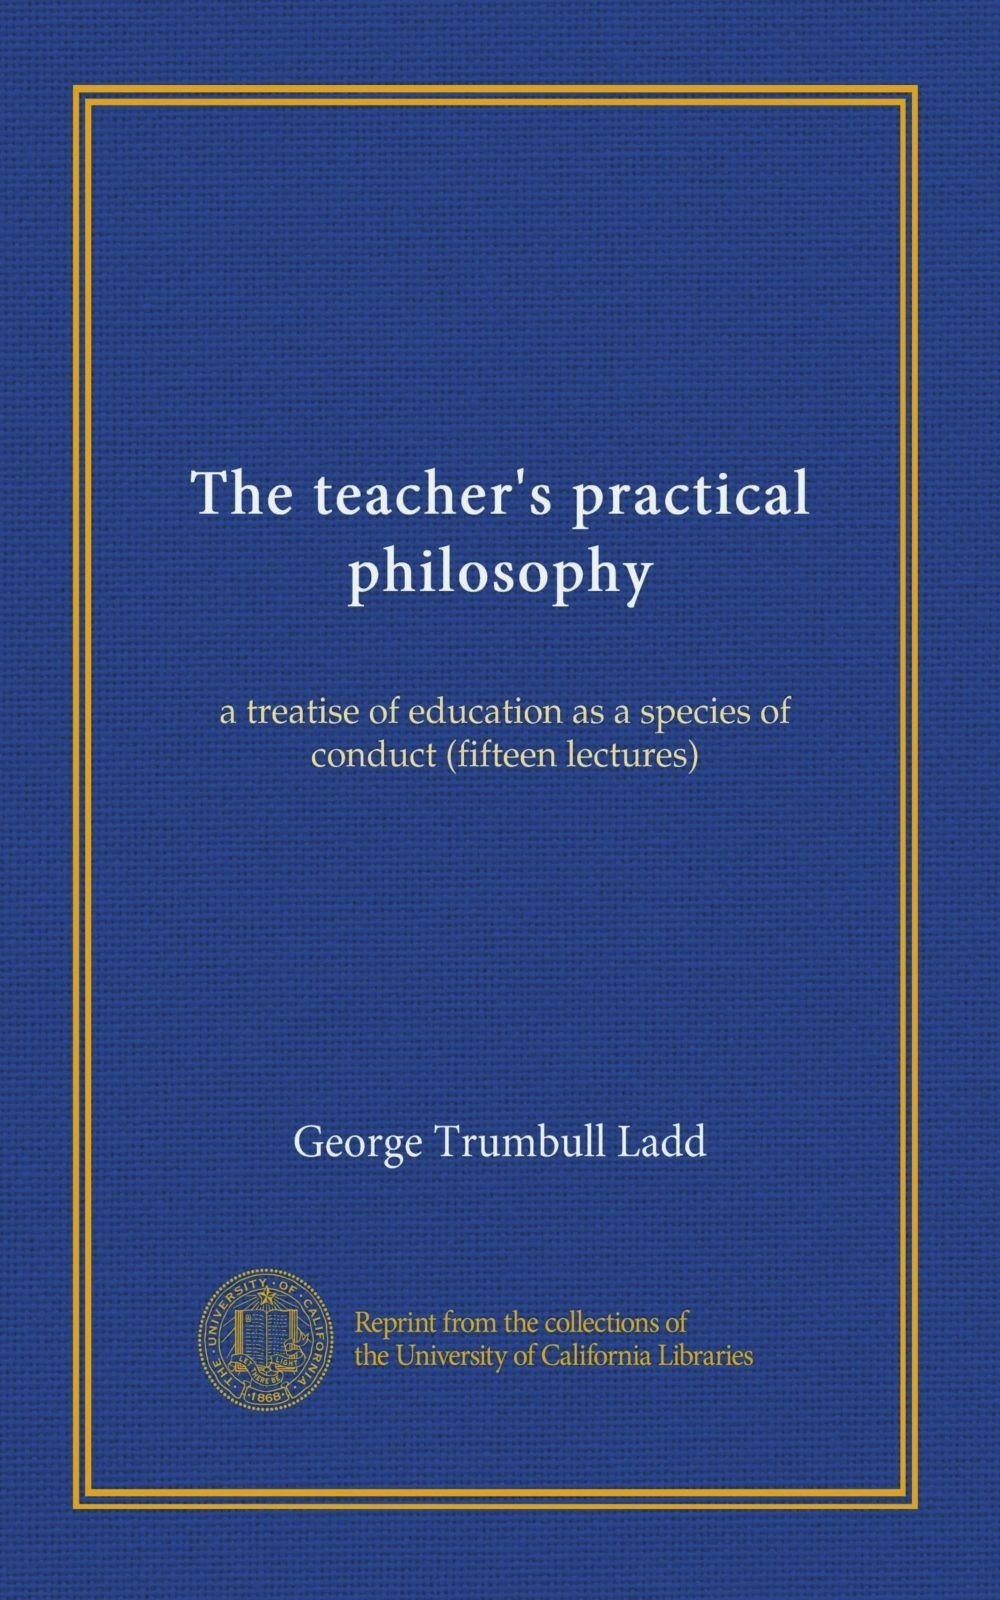 Download The teacher's practical philosophy: a treatise of education as a species of conduct (fifteen lectures) ebook